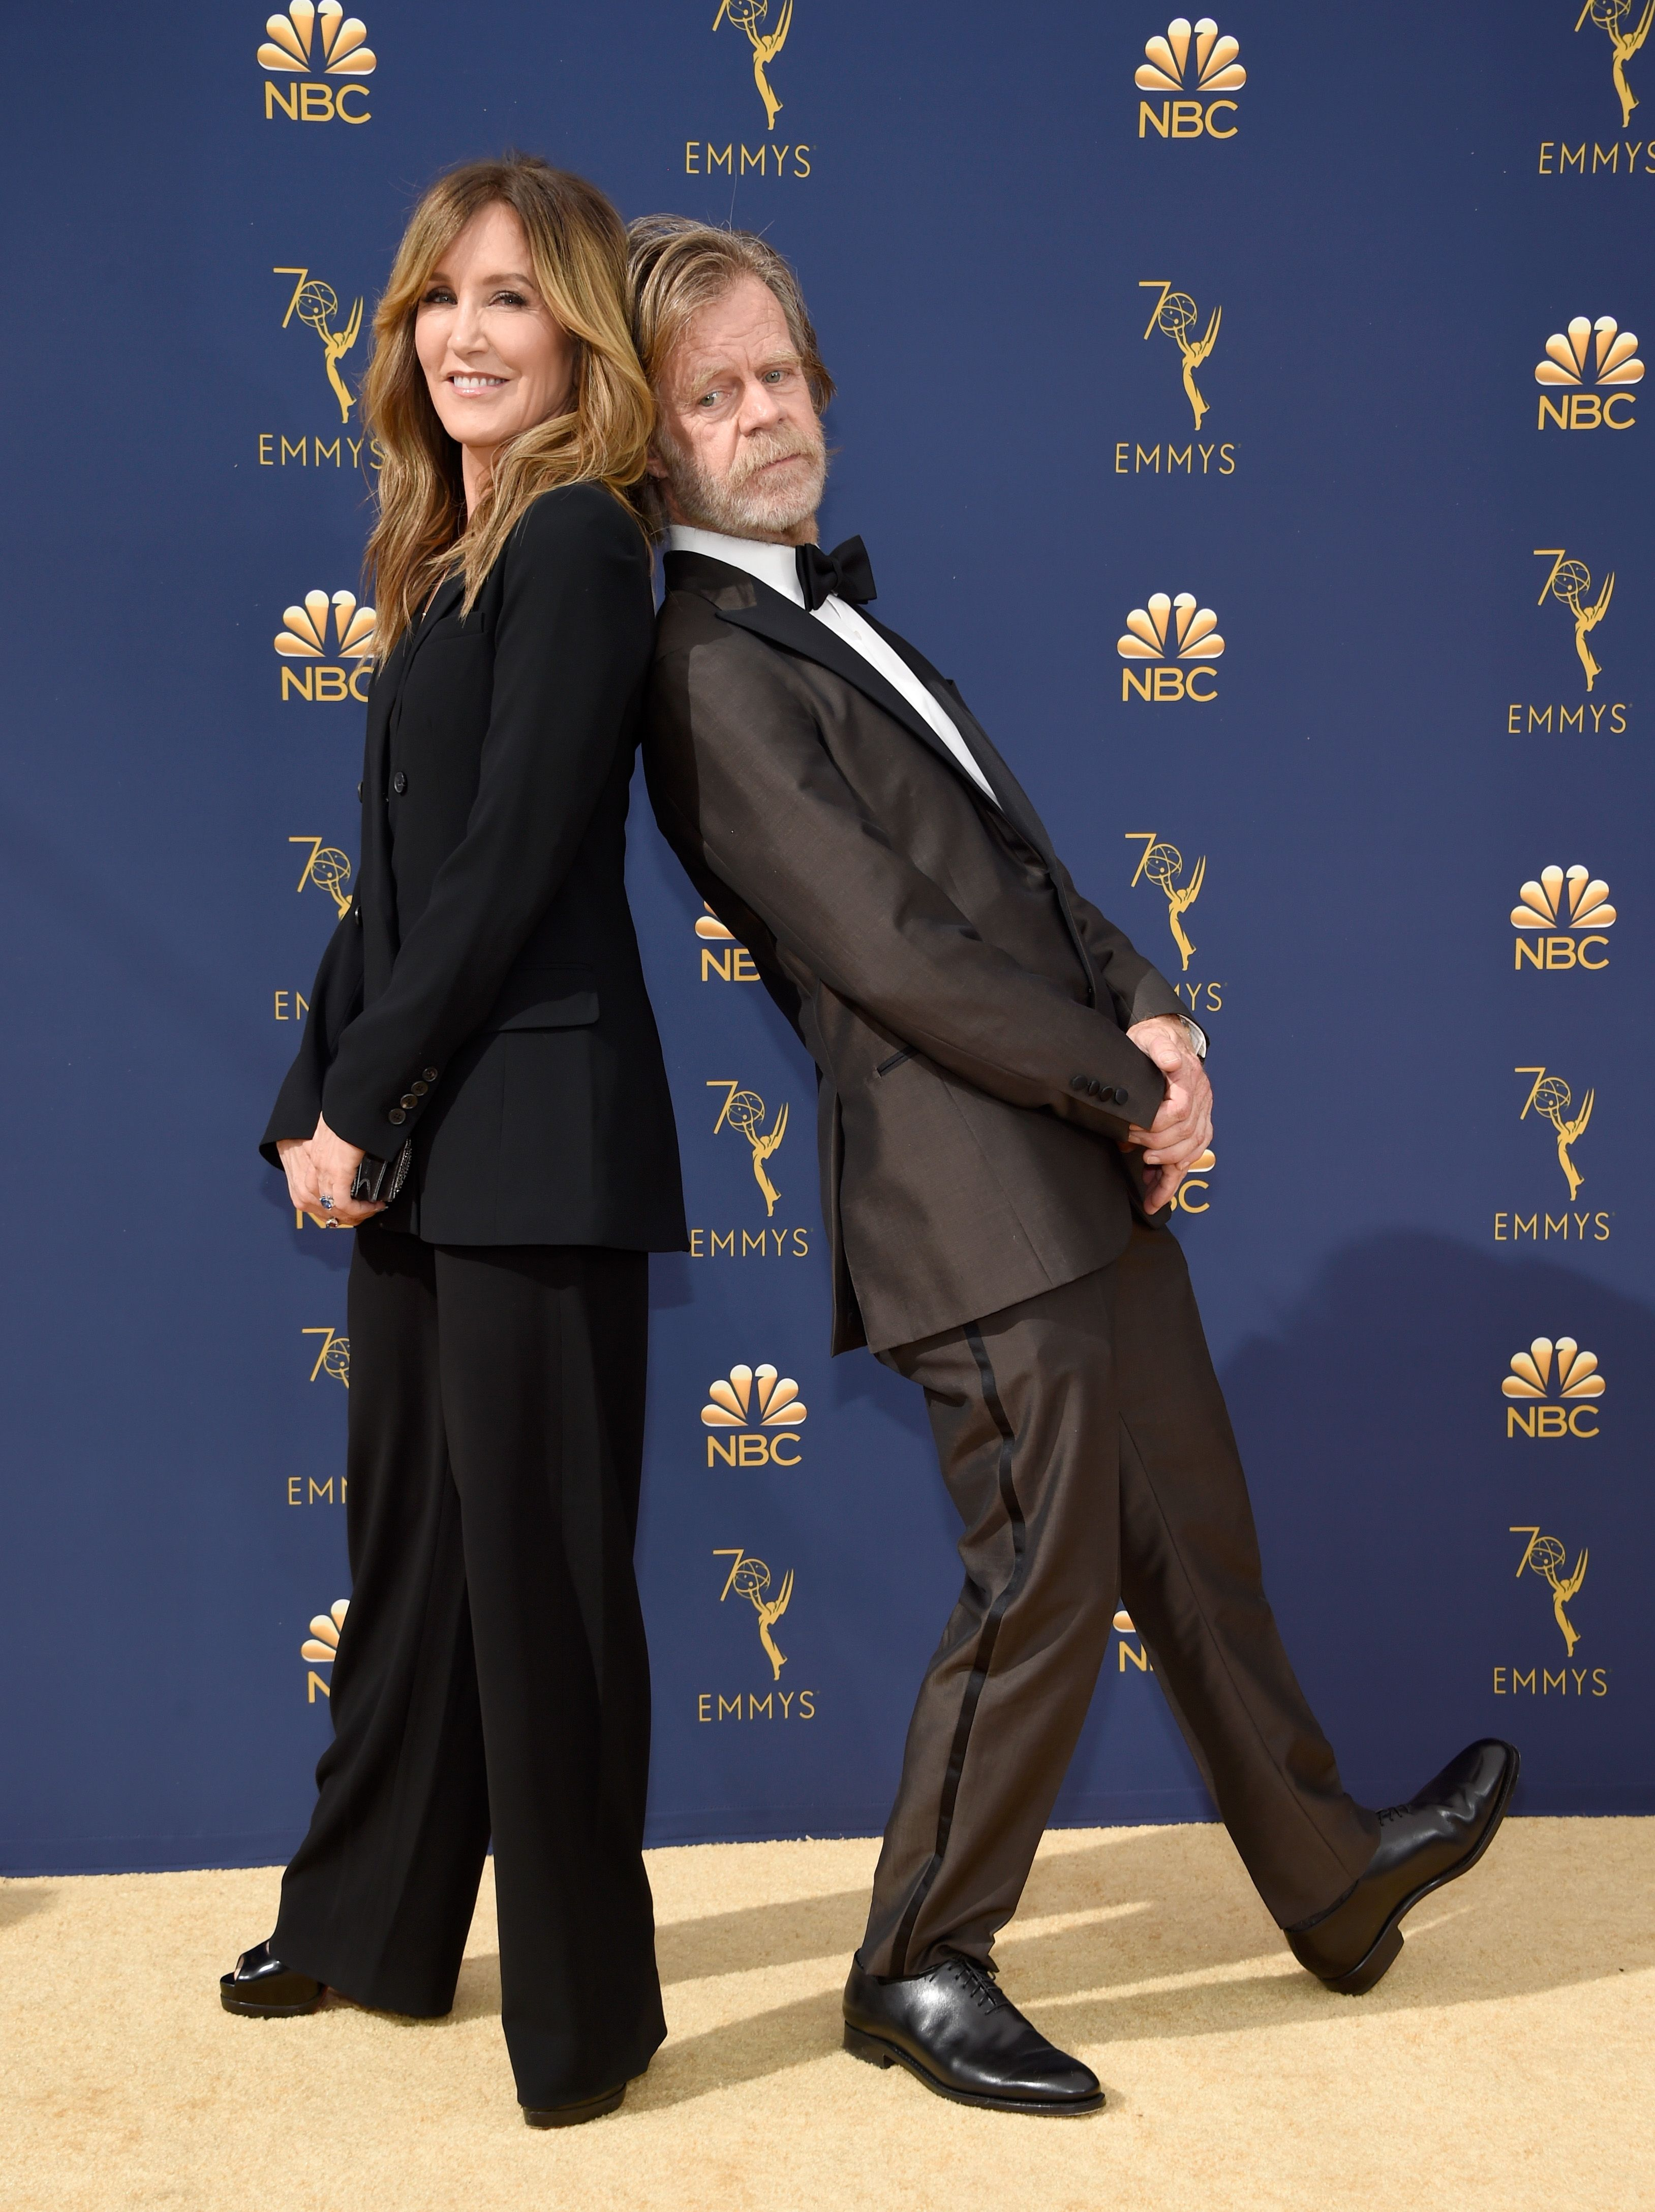 The couple at the 2018 Emmy Awards.